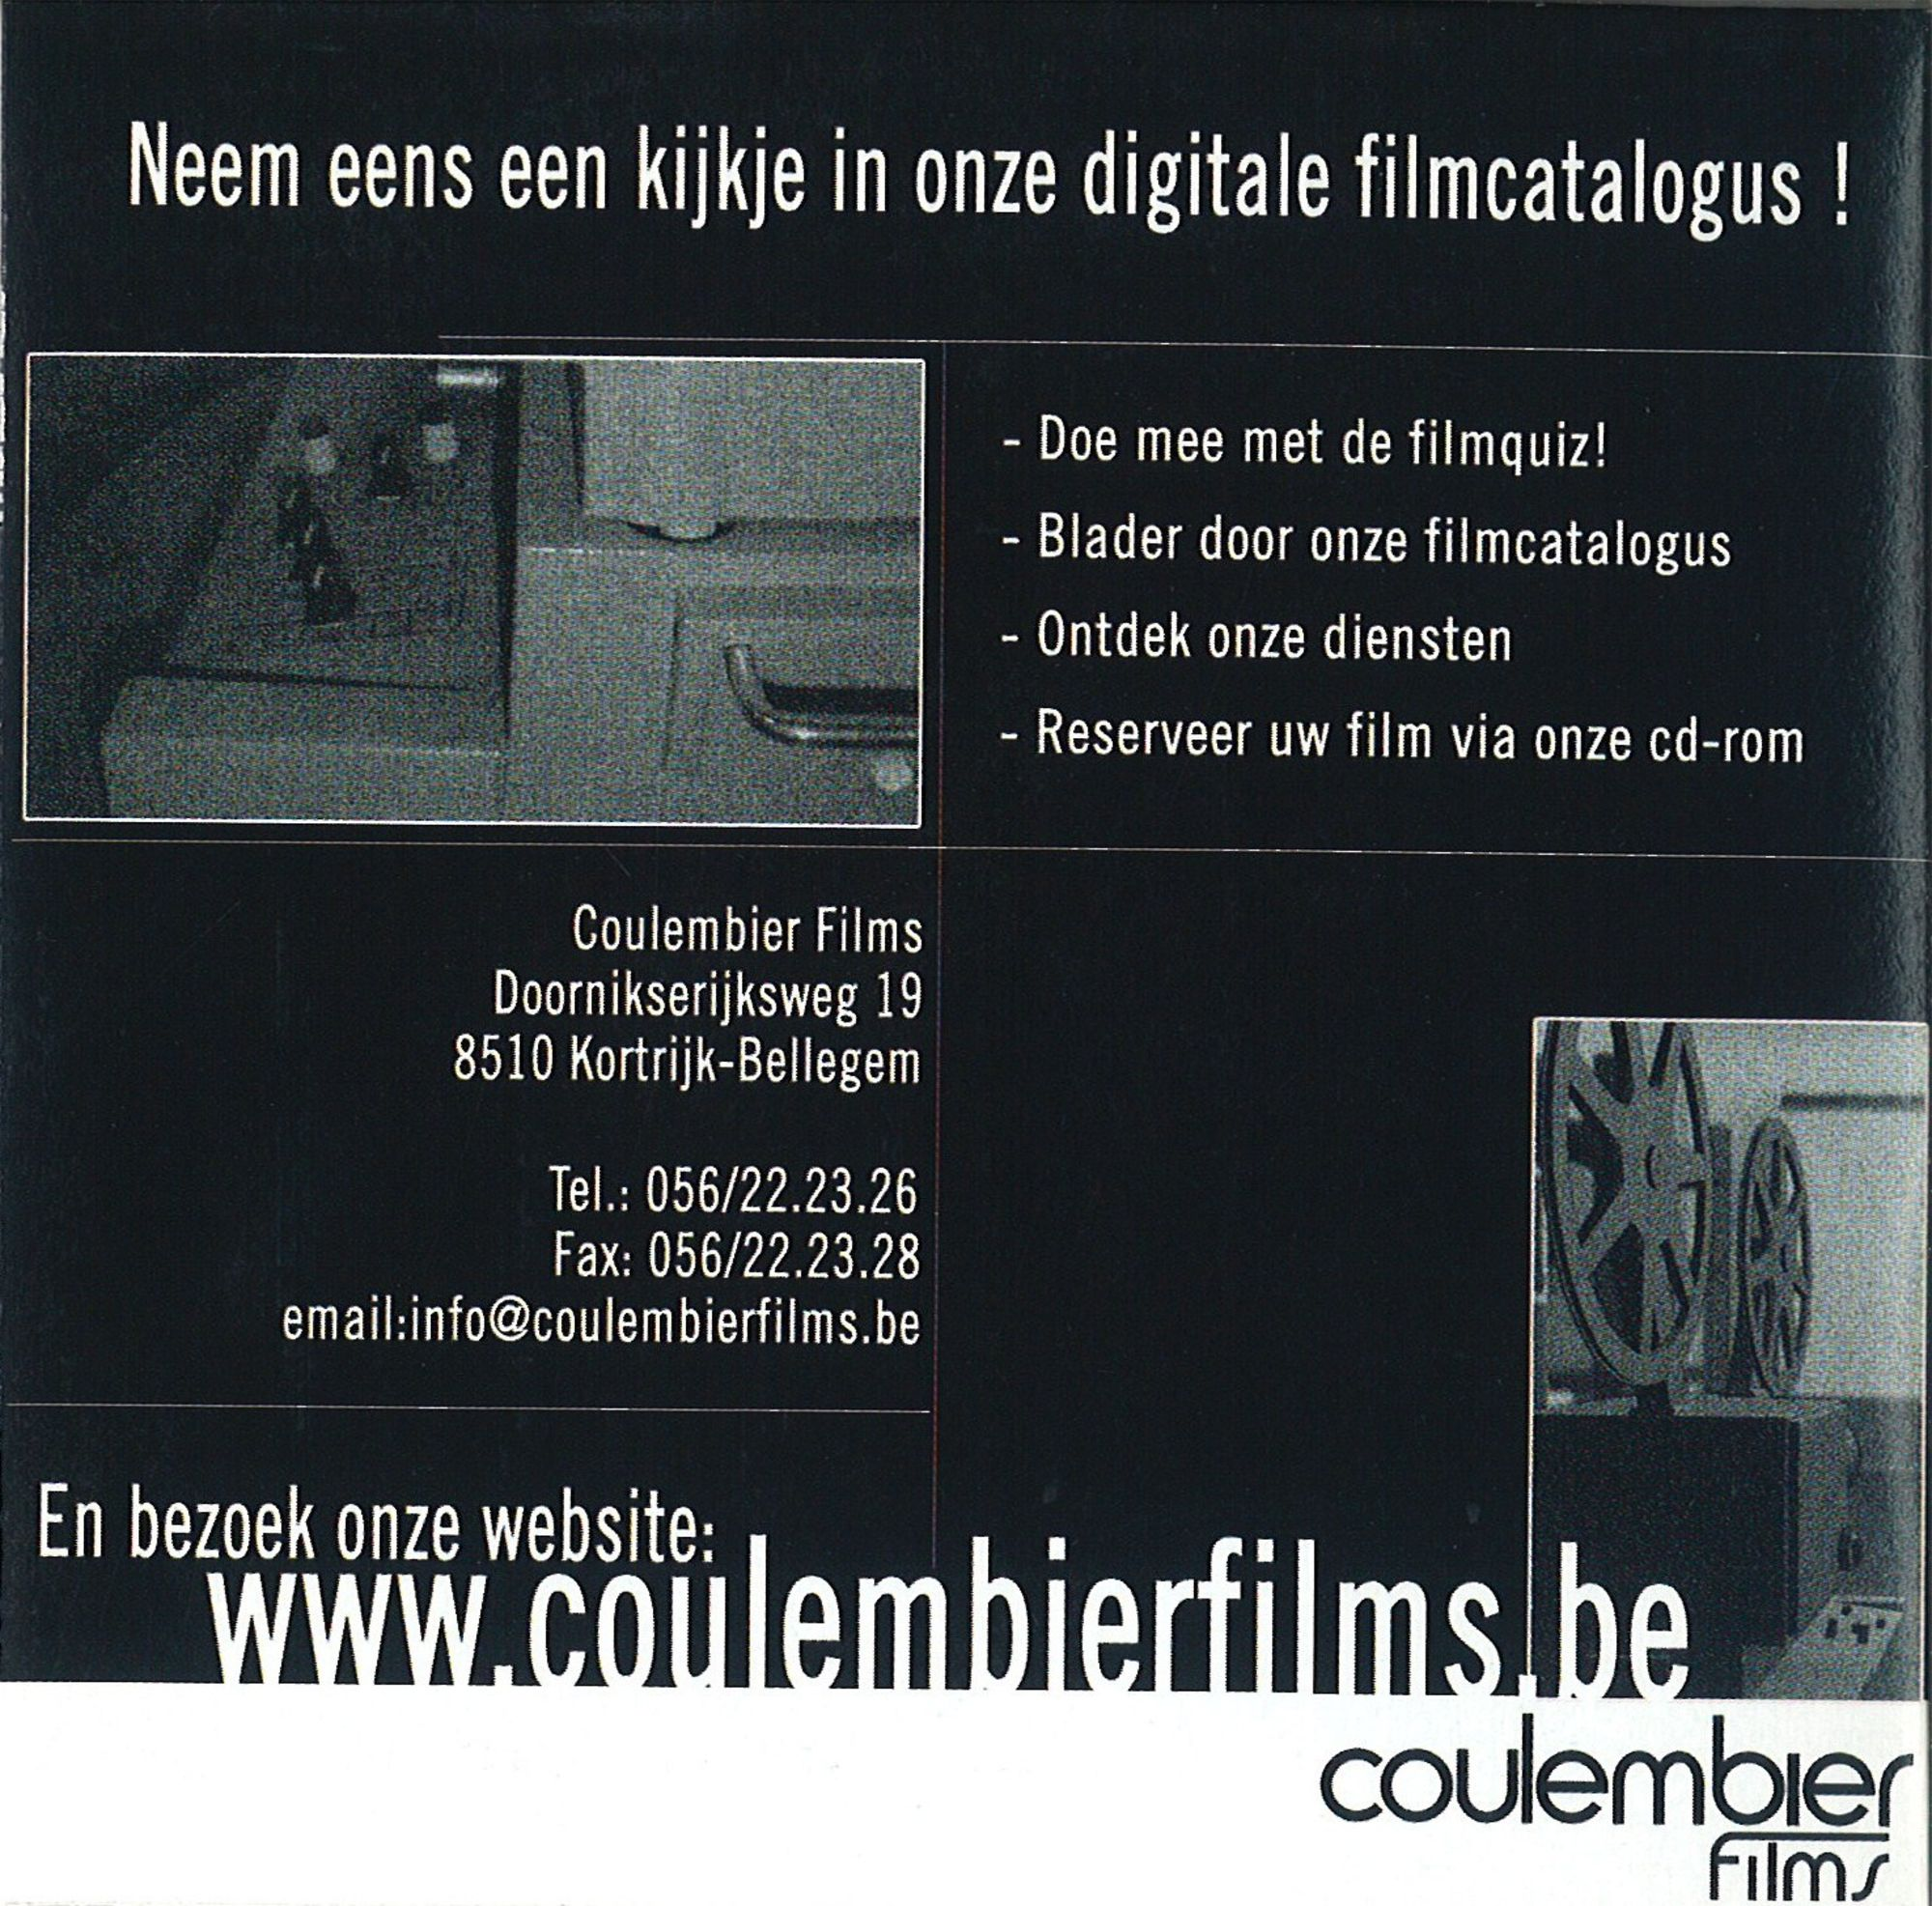 Coulembier films